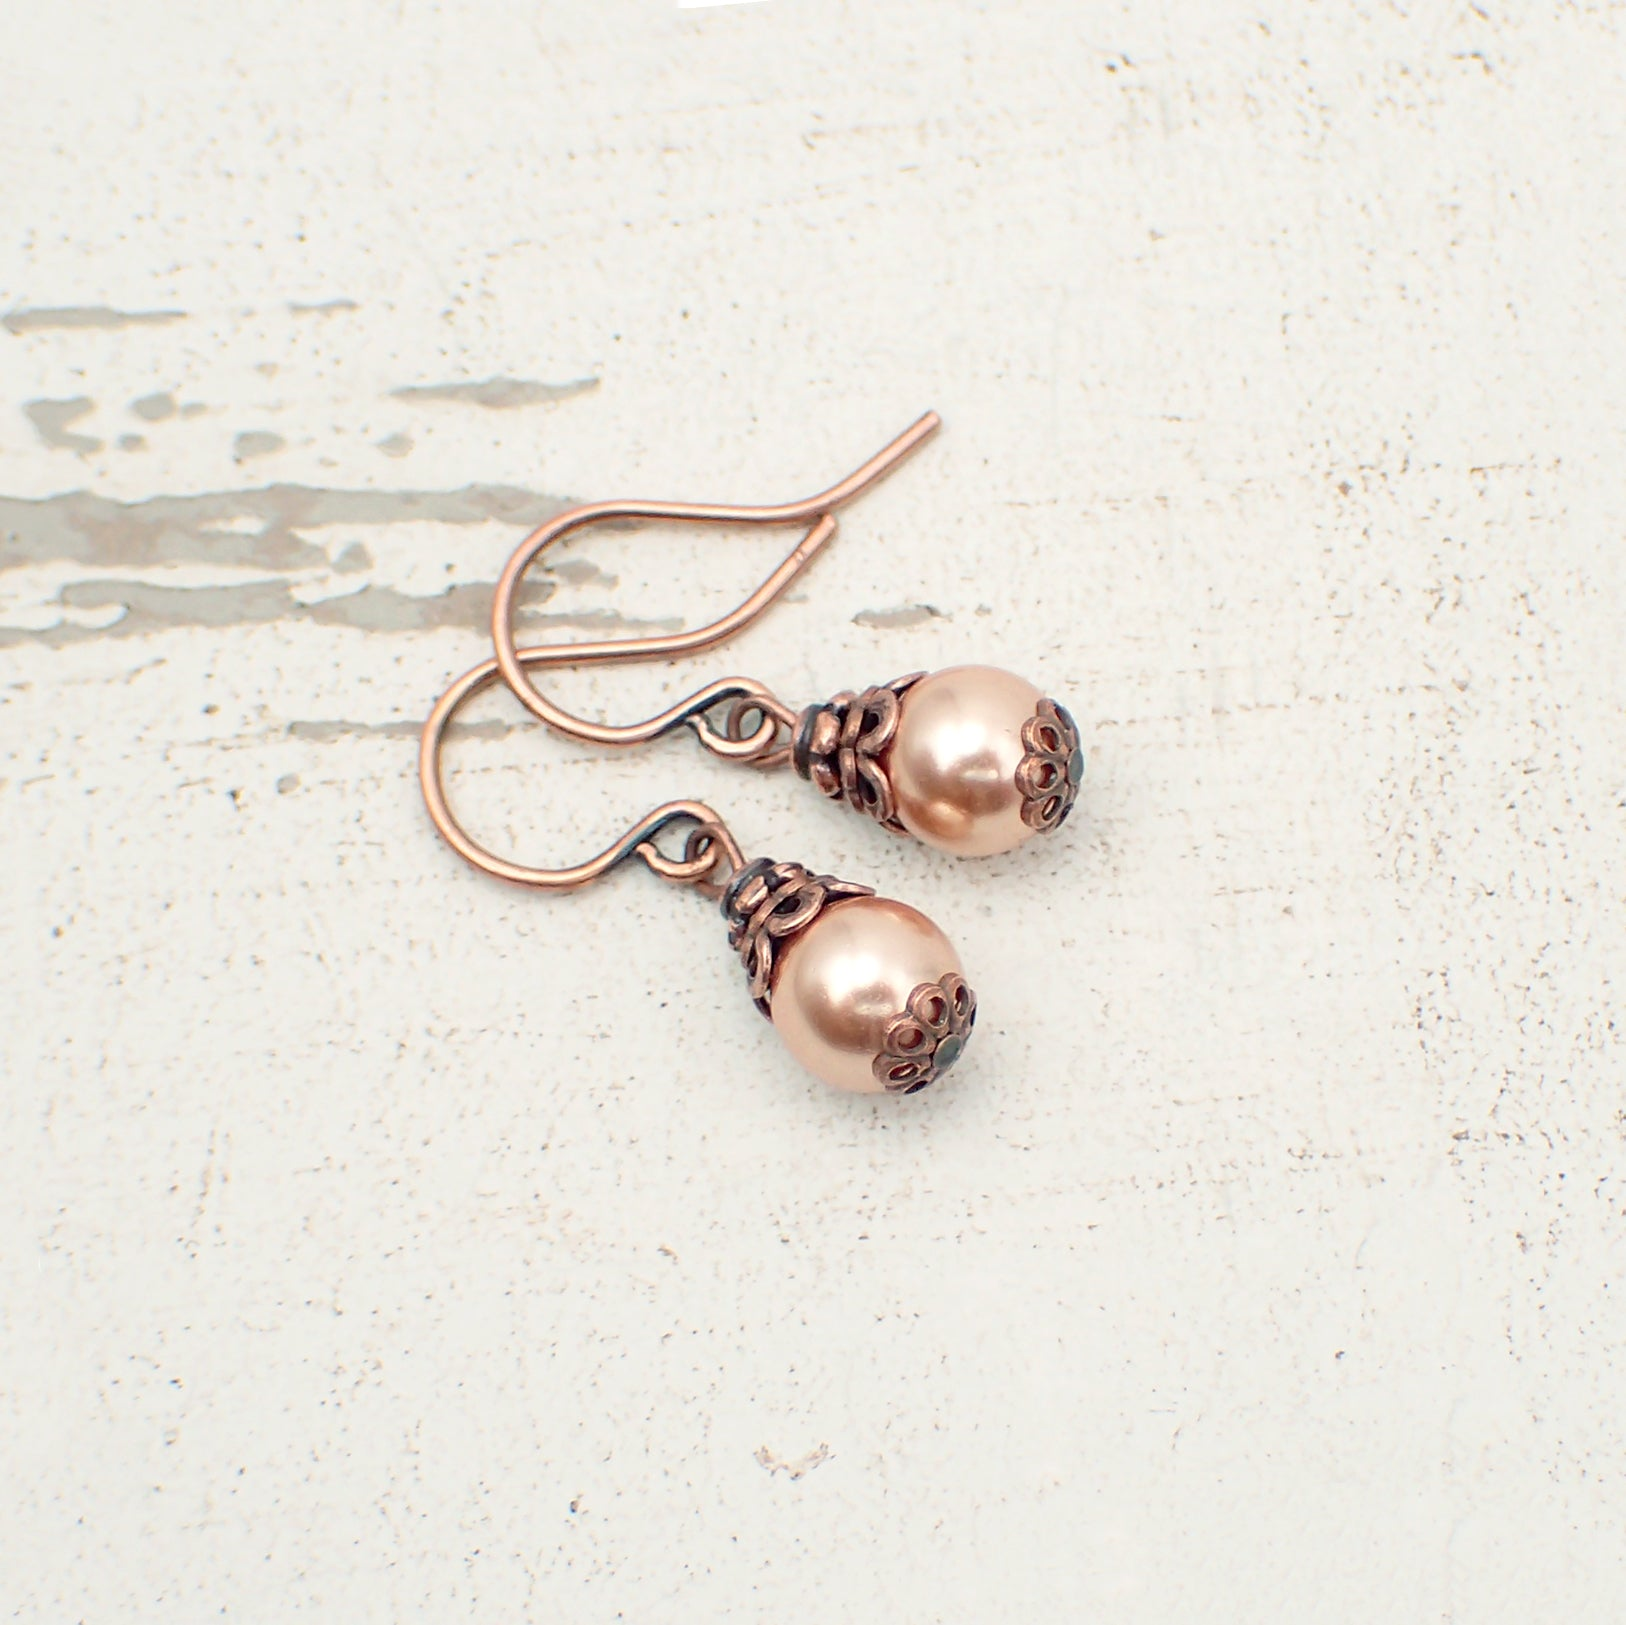 Dainty little rose gold-colored Swarovski crystal pearls dressed with antiqued copper details.